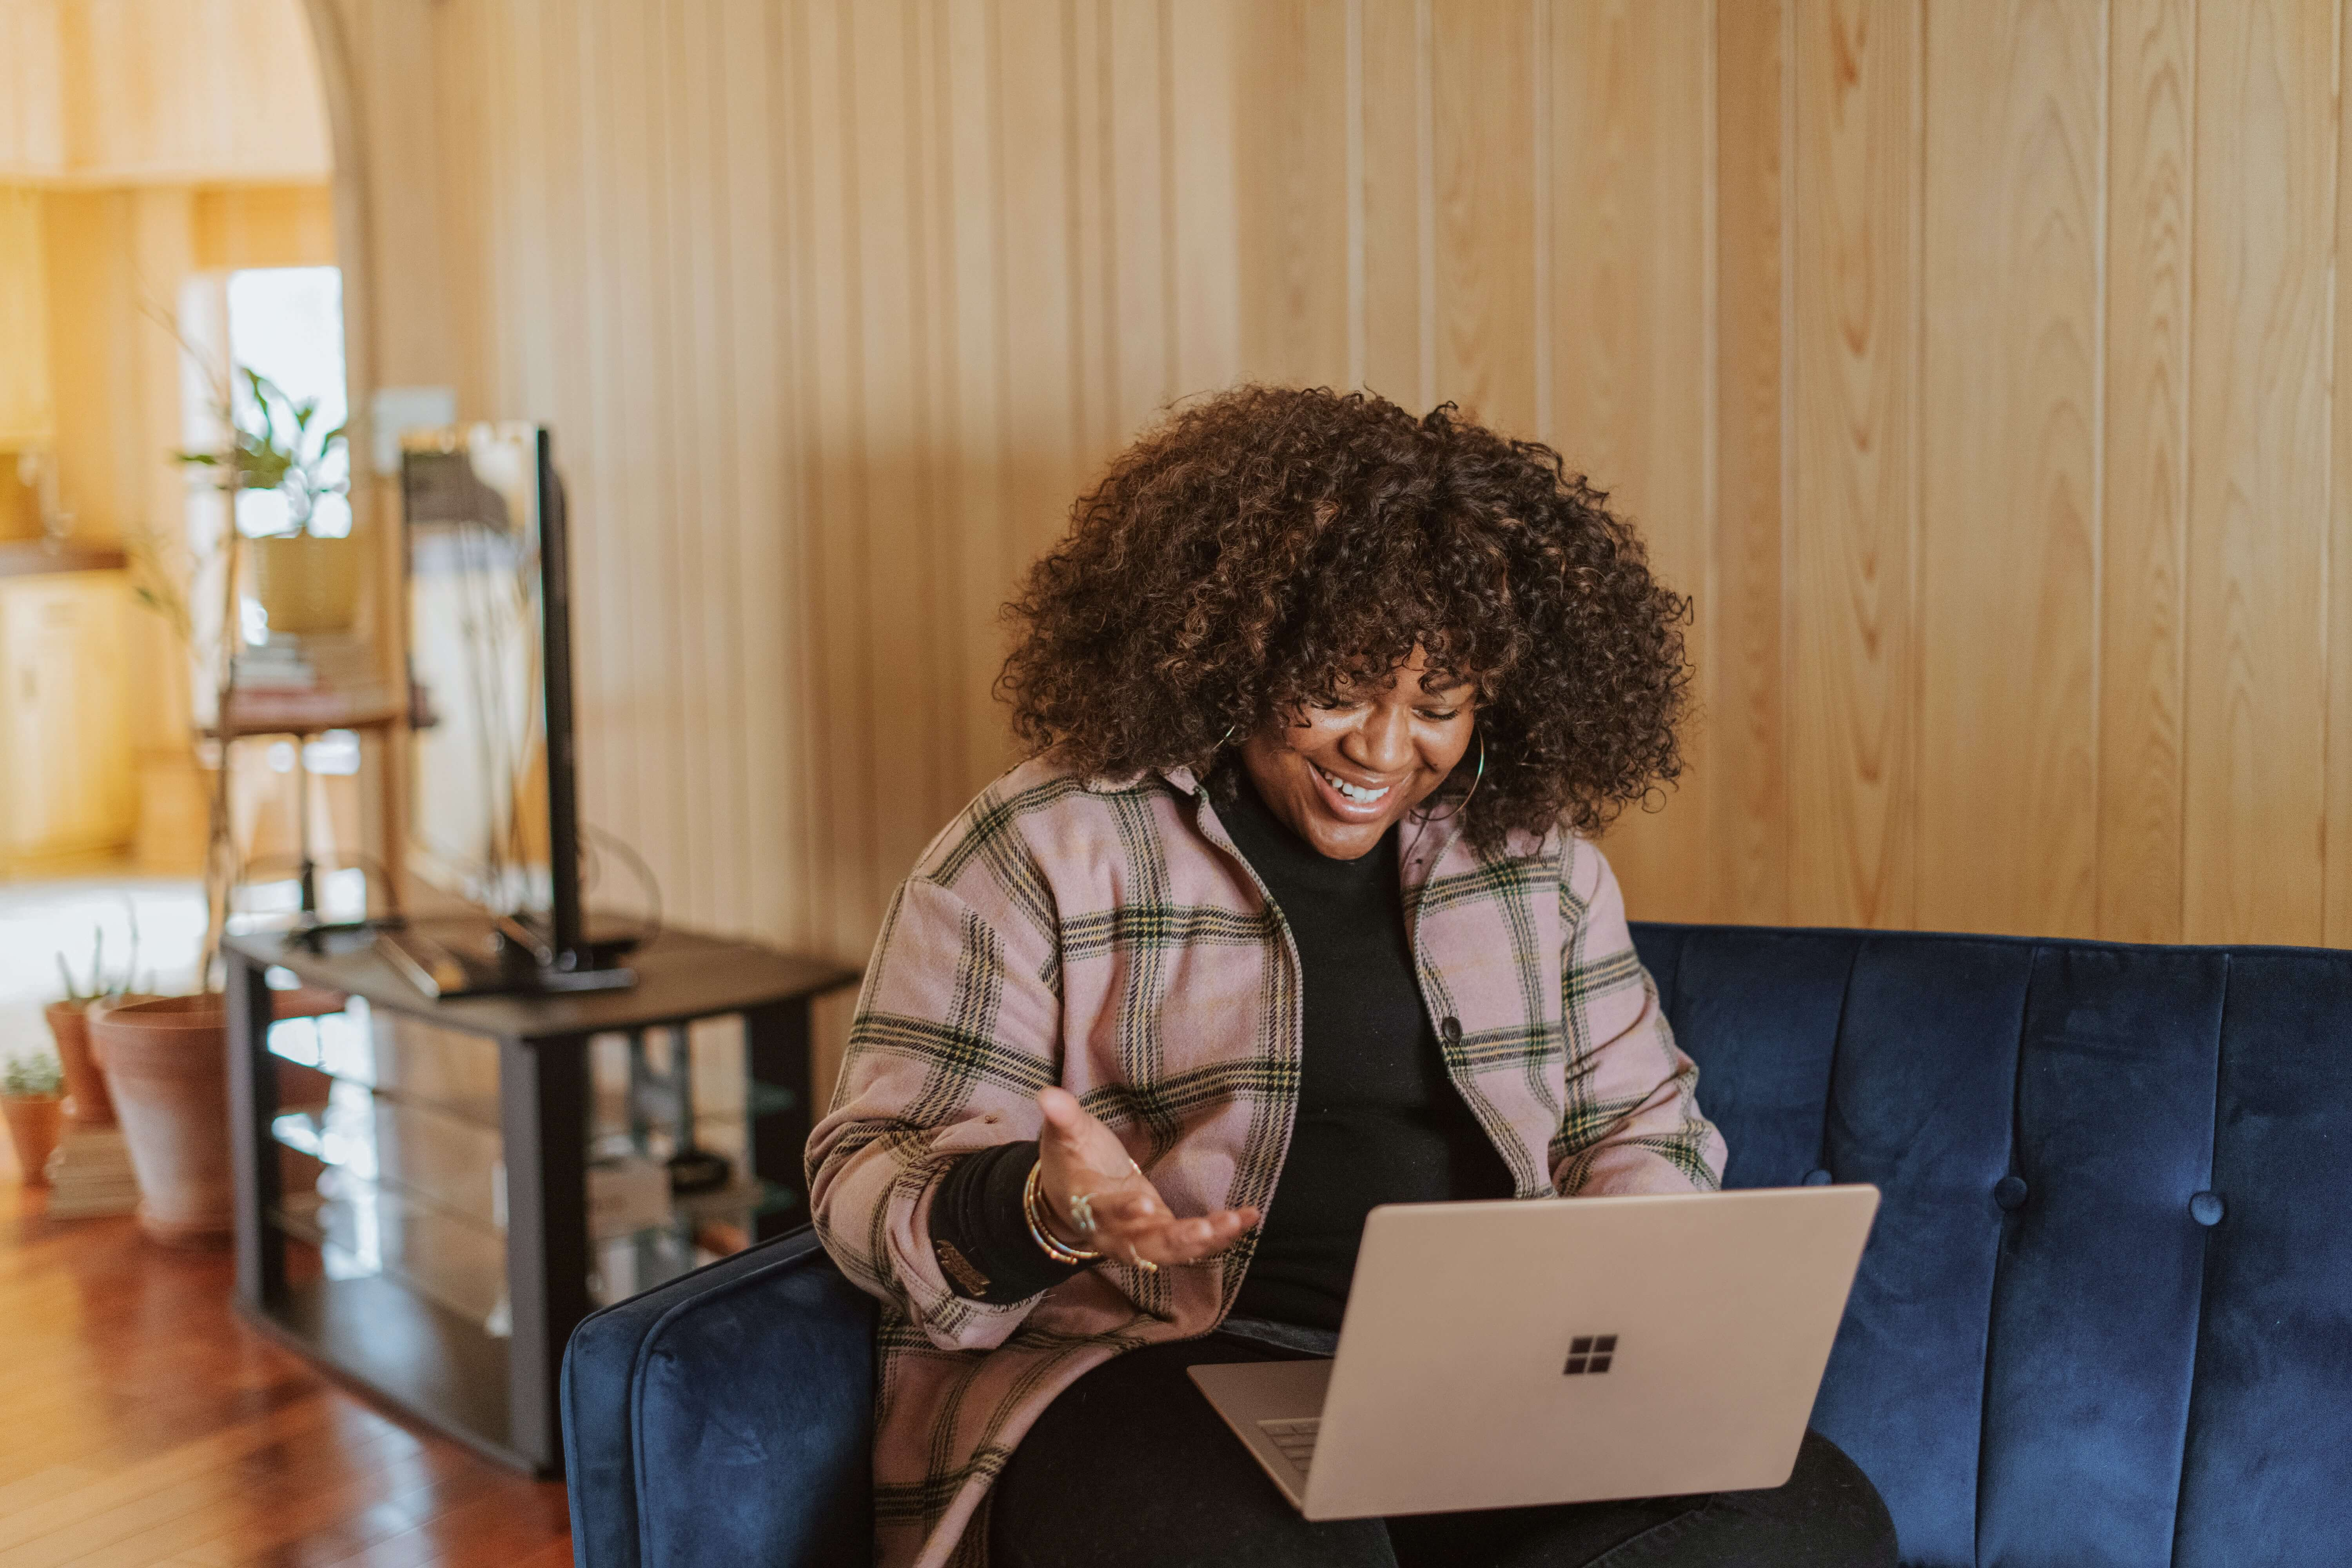 Woman sitting down on a blue sofa, smiling and looking at her laptop.